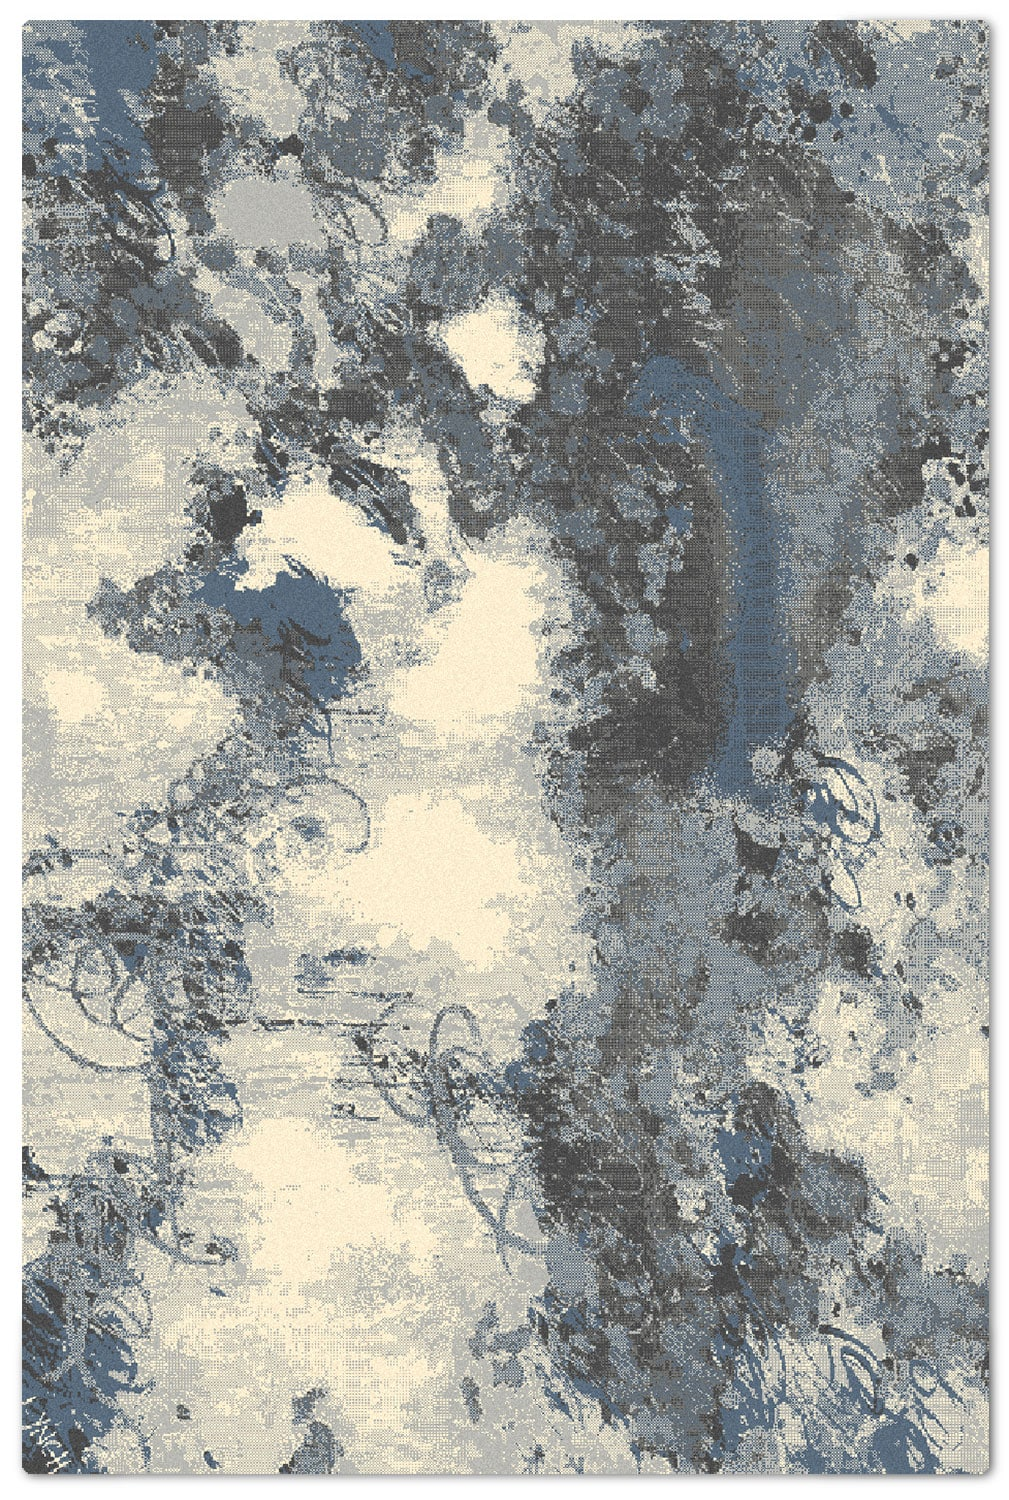 Urban Blue 5' x 8' Area Rug - Blue, Grey and White